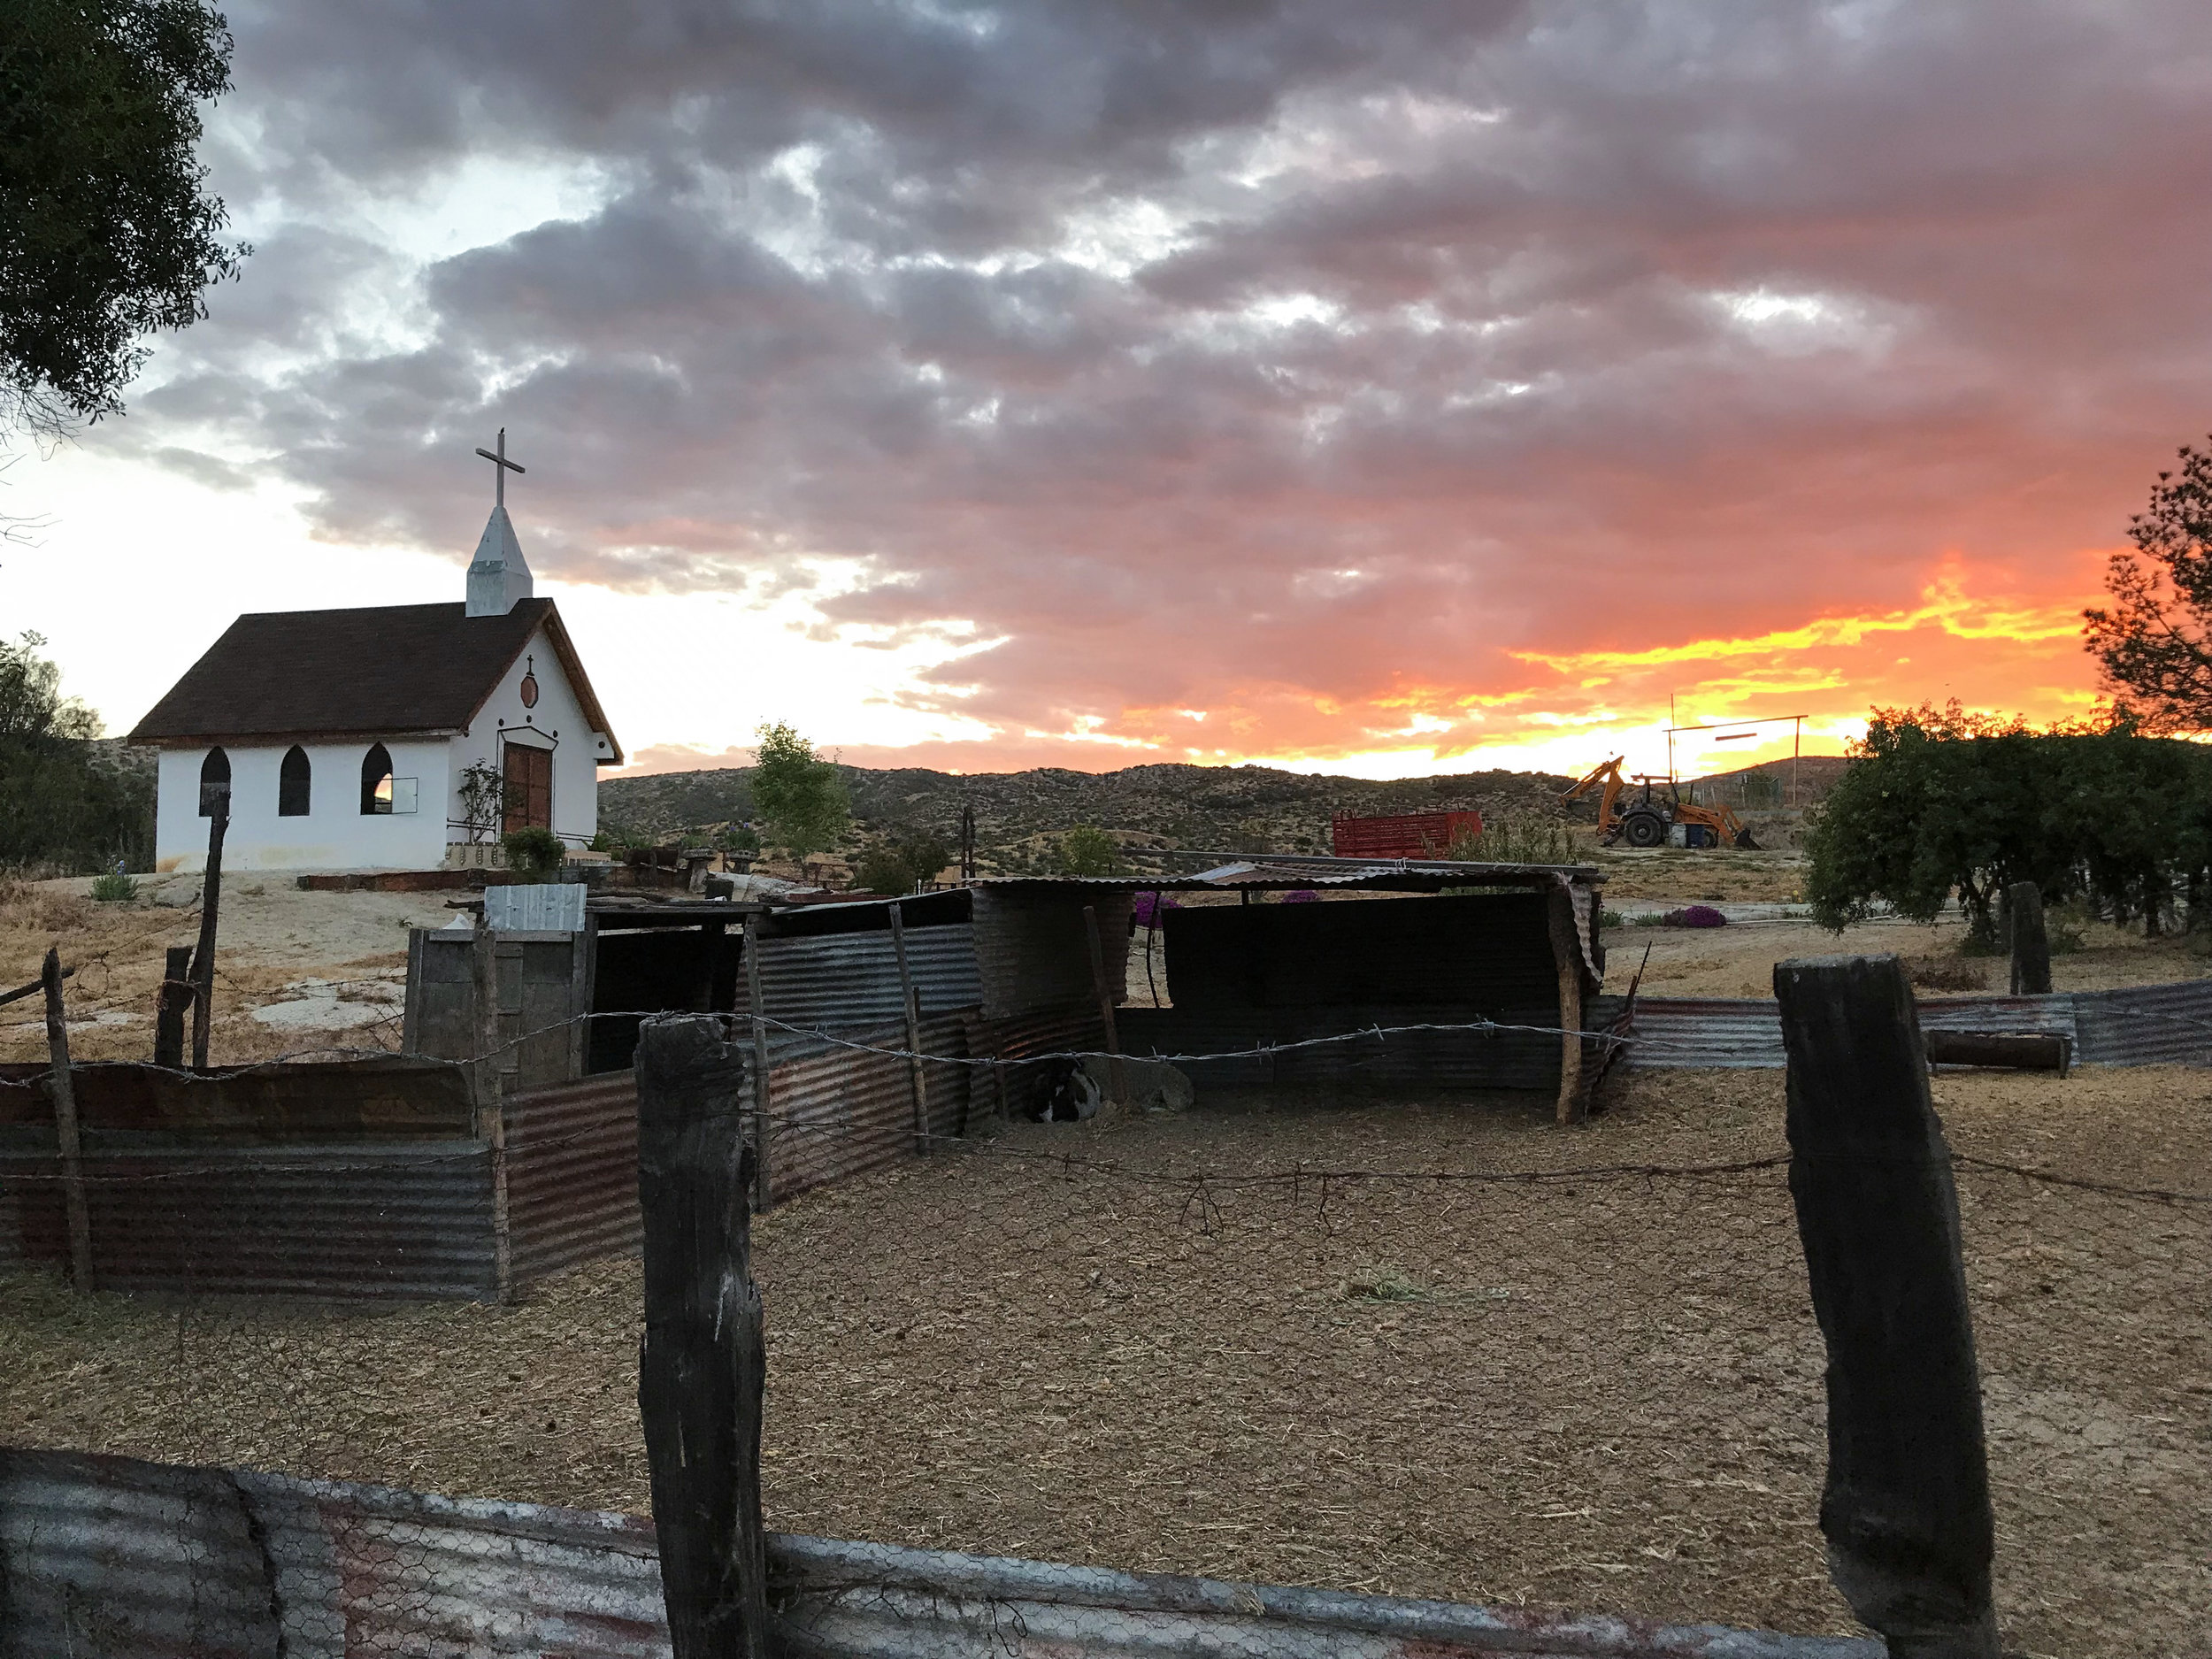 Meling Ranch at sunset. There is a pool, cabins, playground, and they even have their own church. Little bit of heaven.